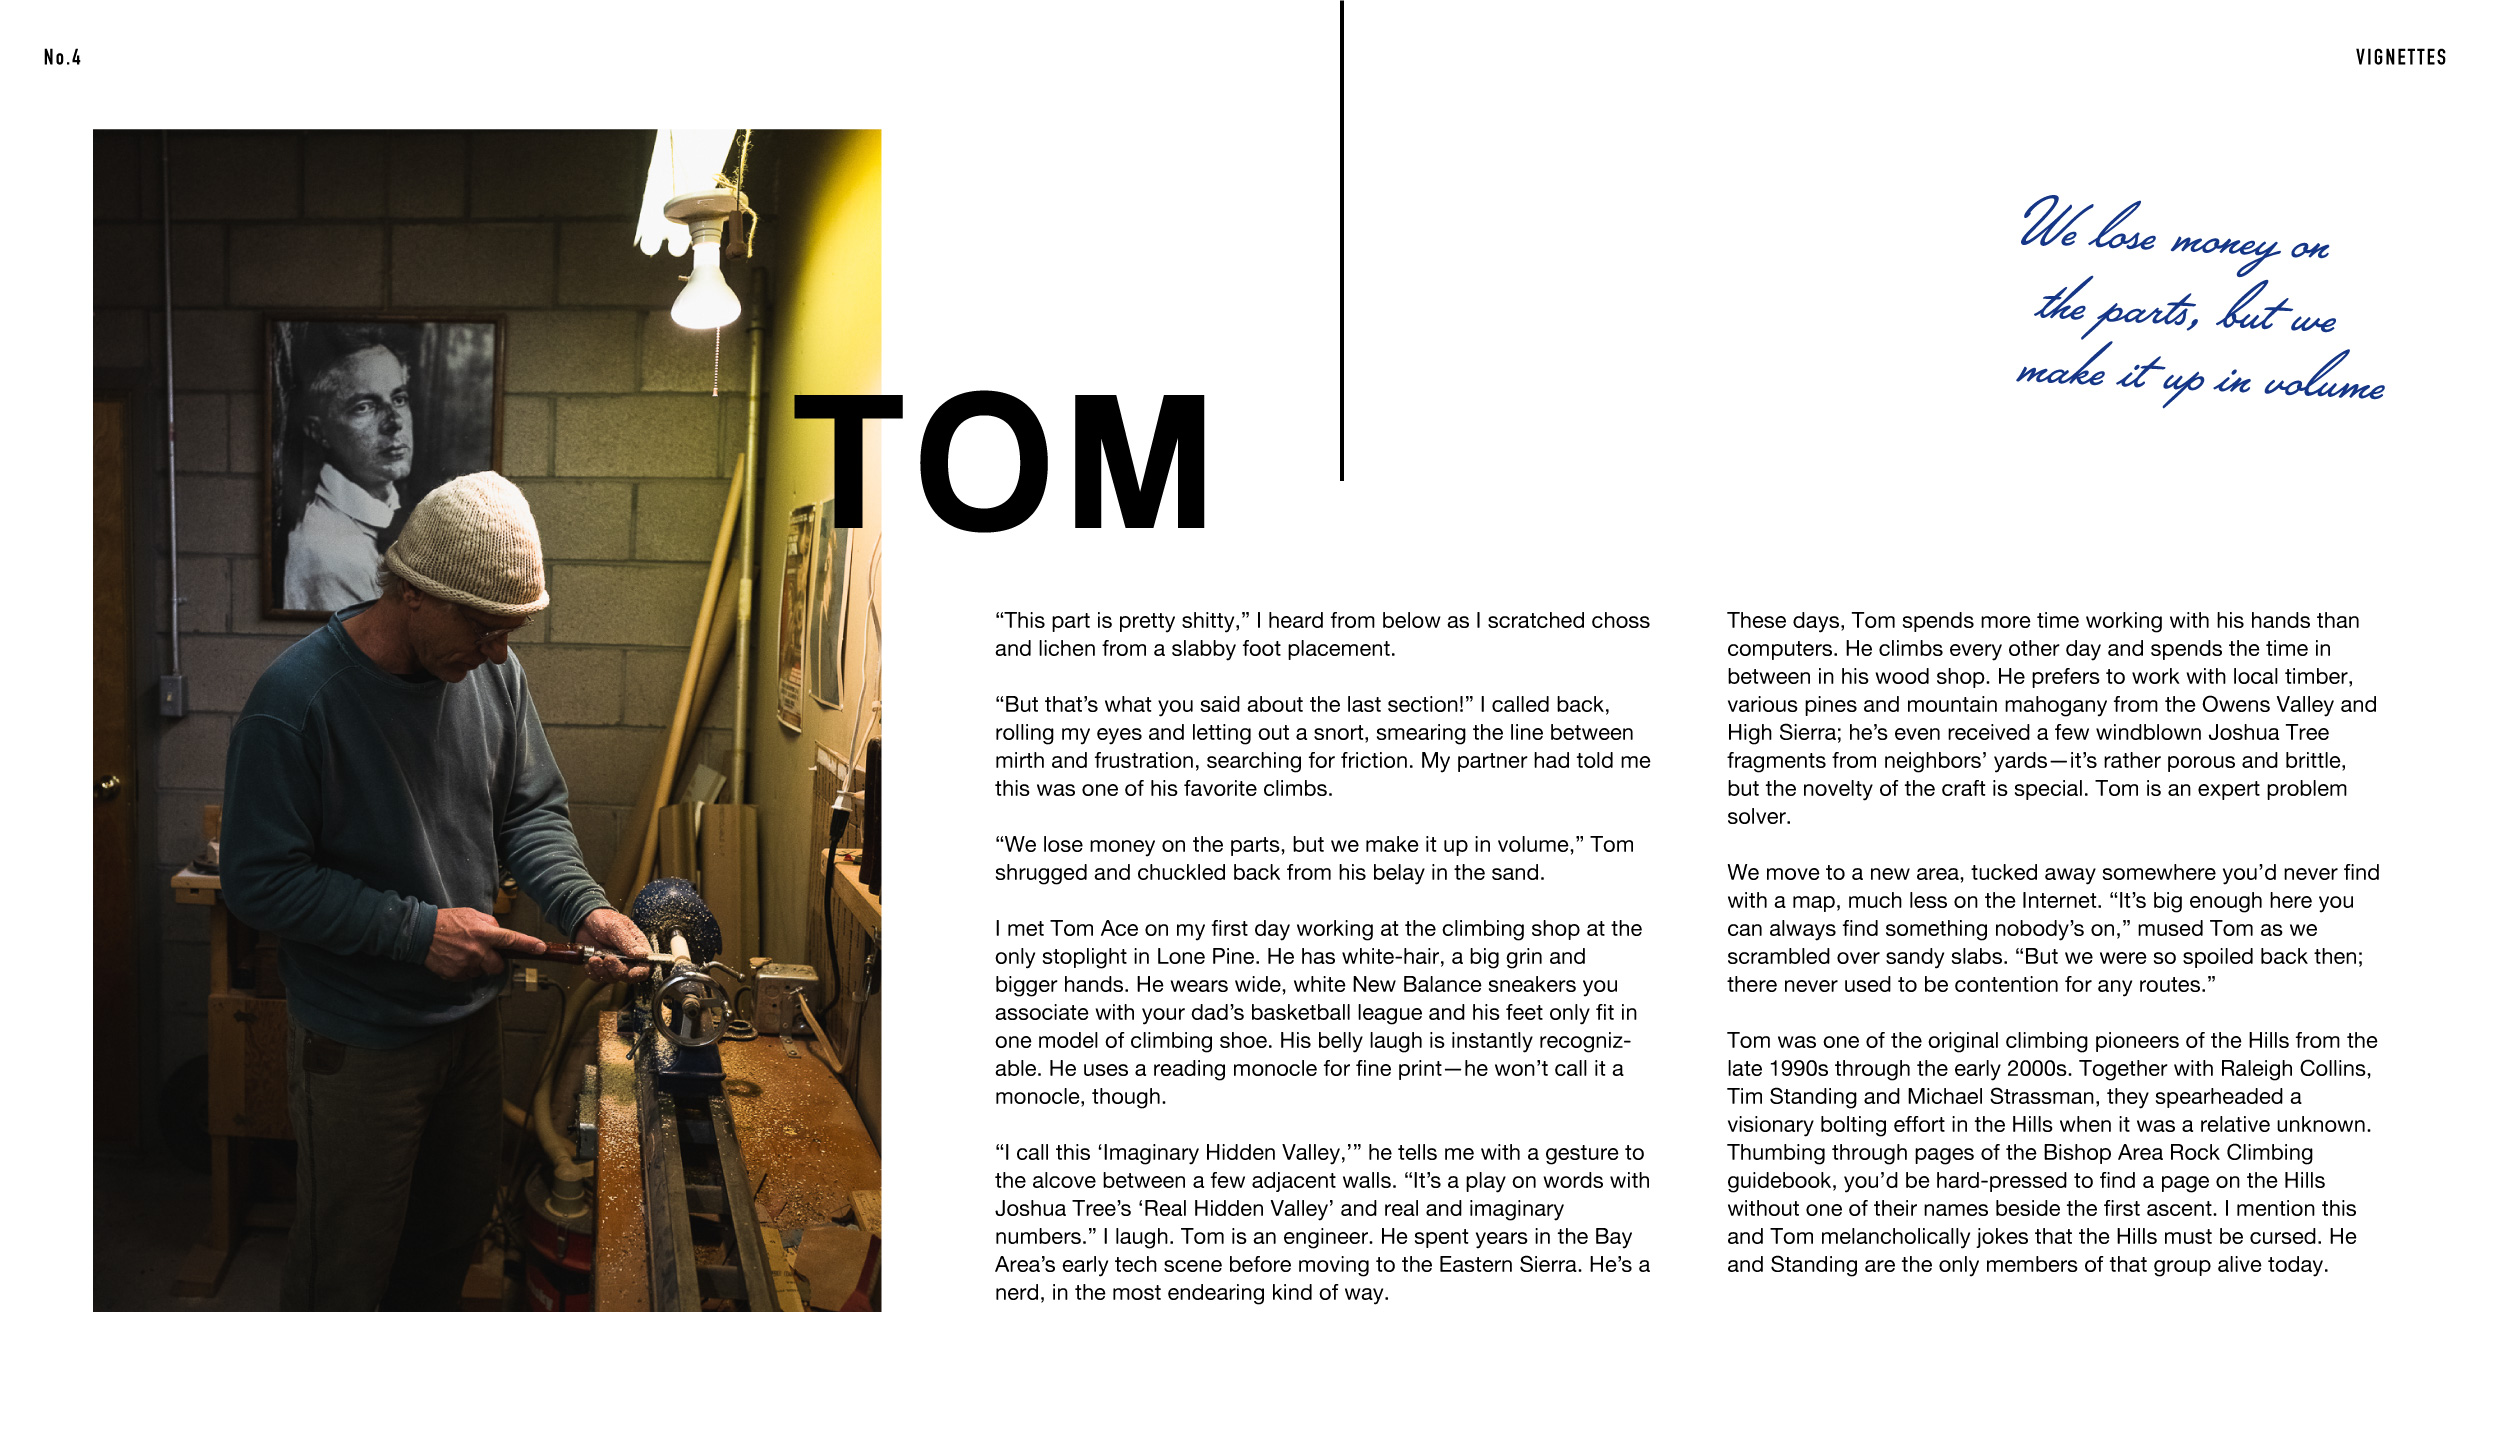 Tufts_Vignettes_Tom